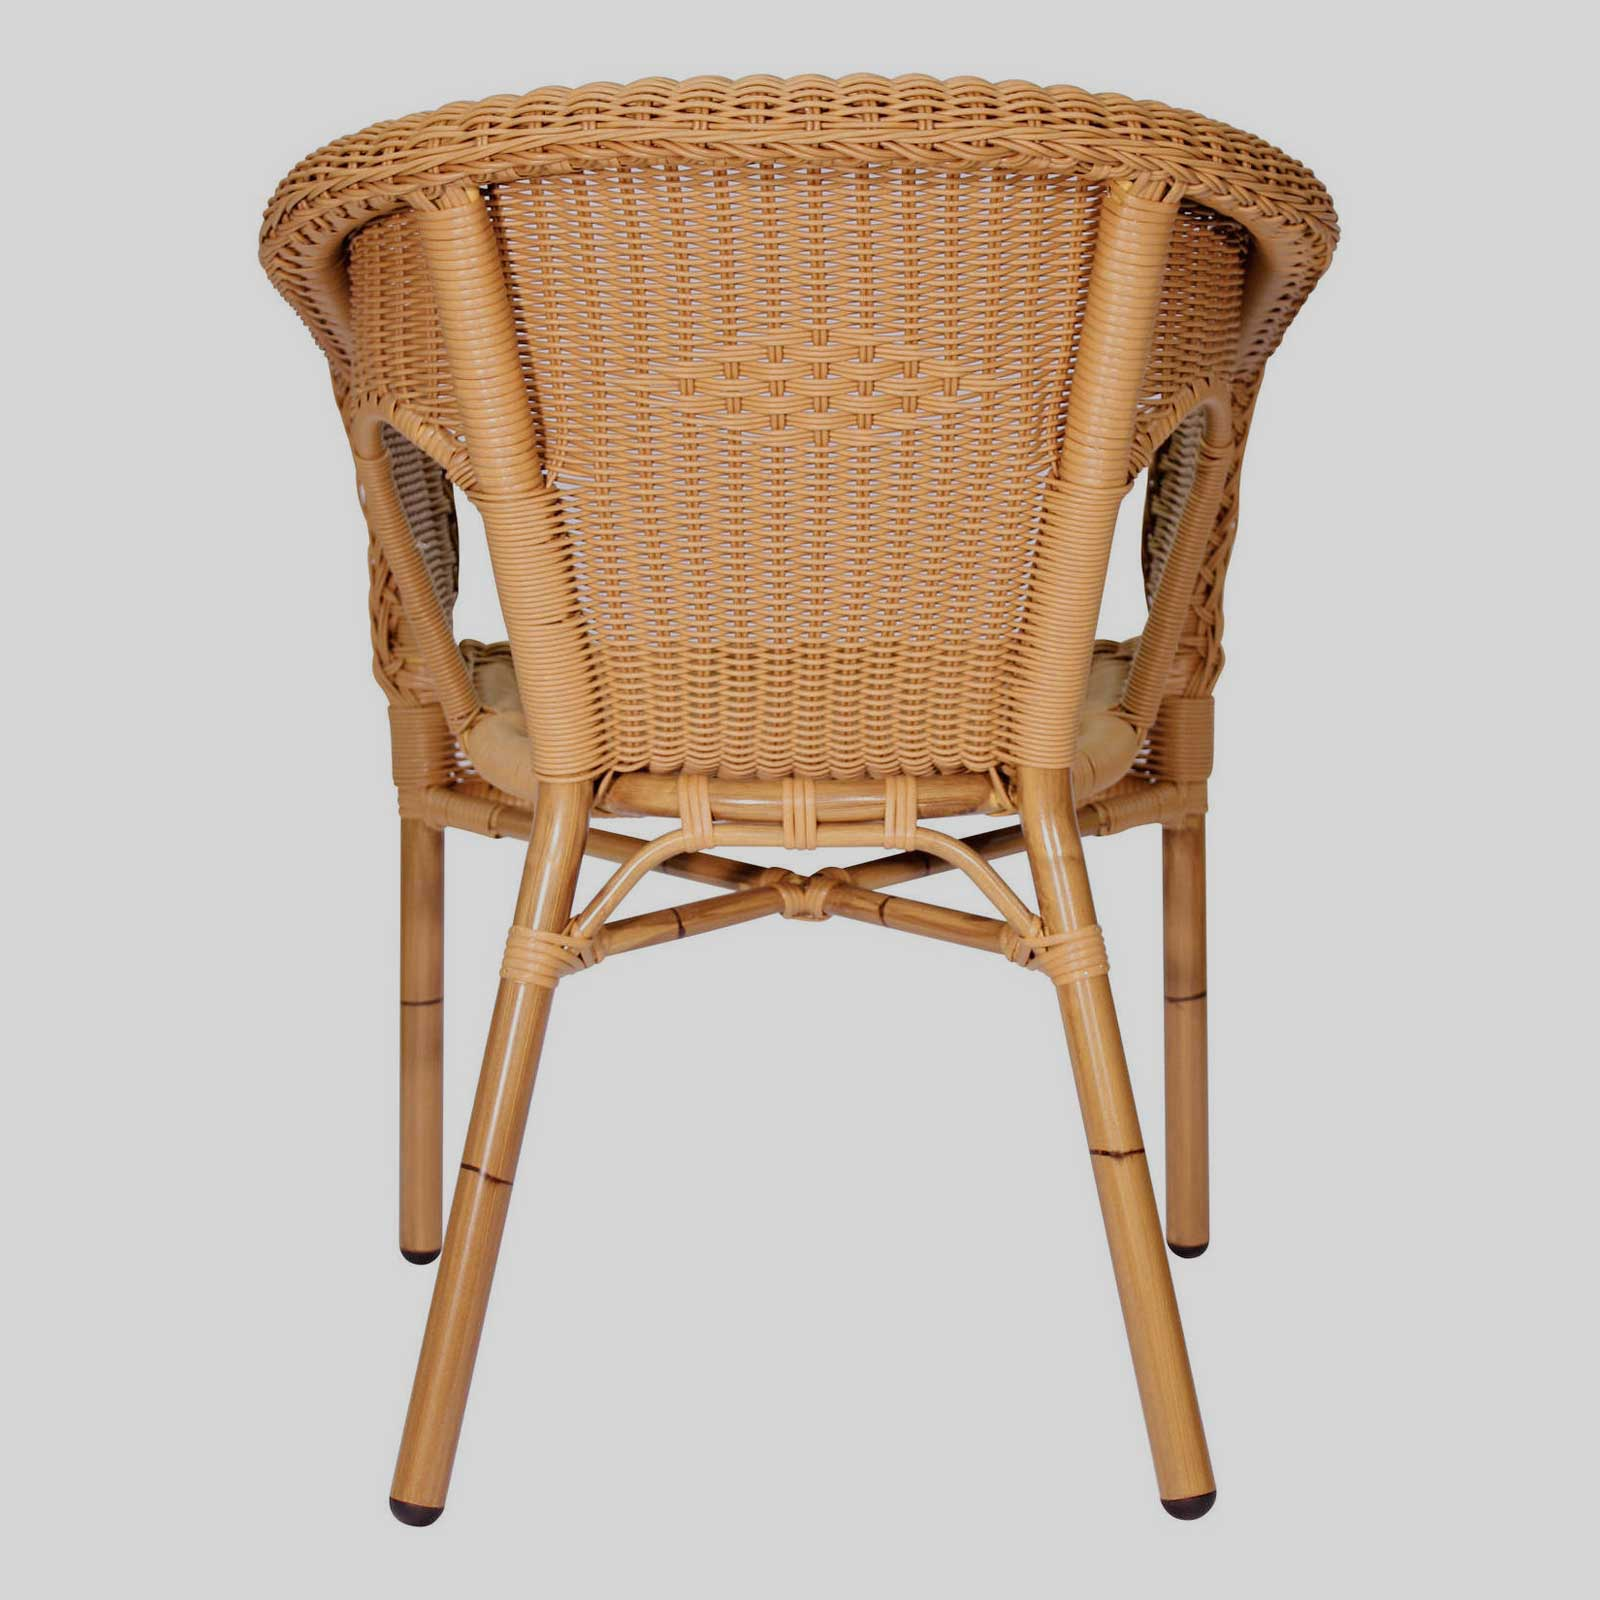 Outdoor wicker chairs brazil concept collections for Outdoor wicker furniture